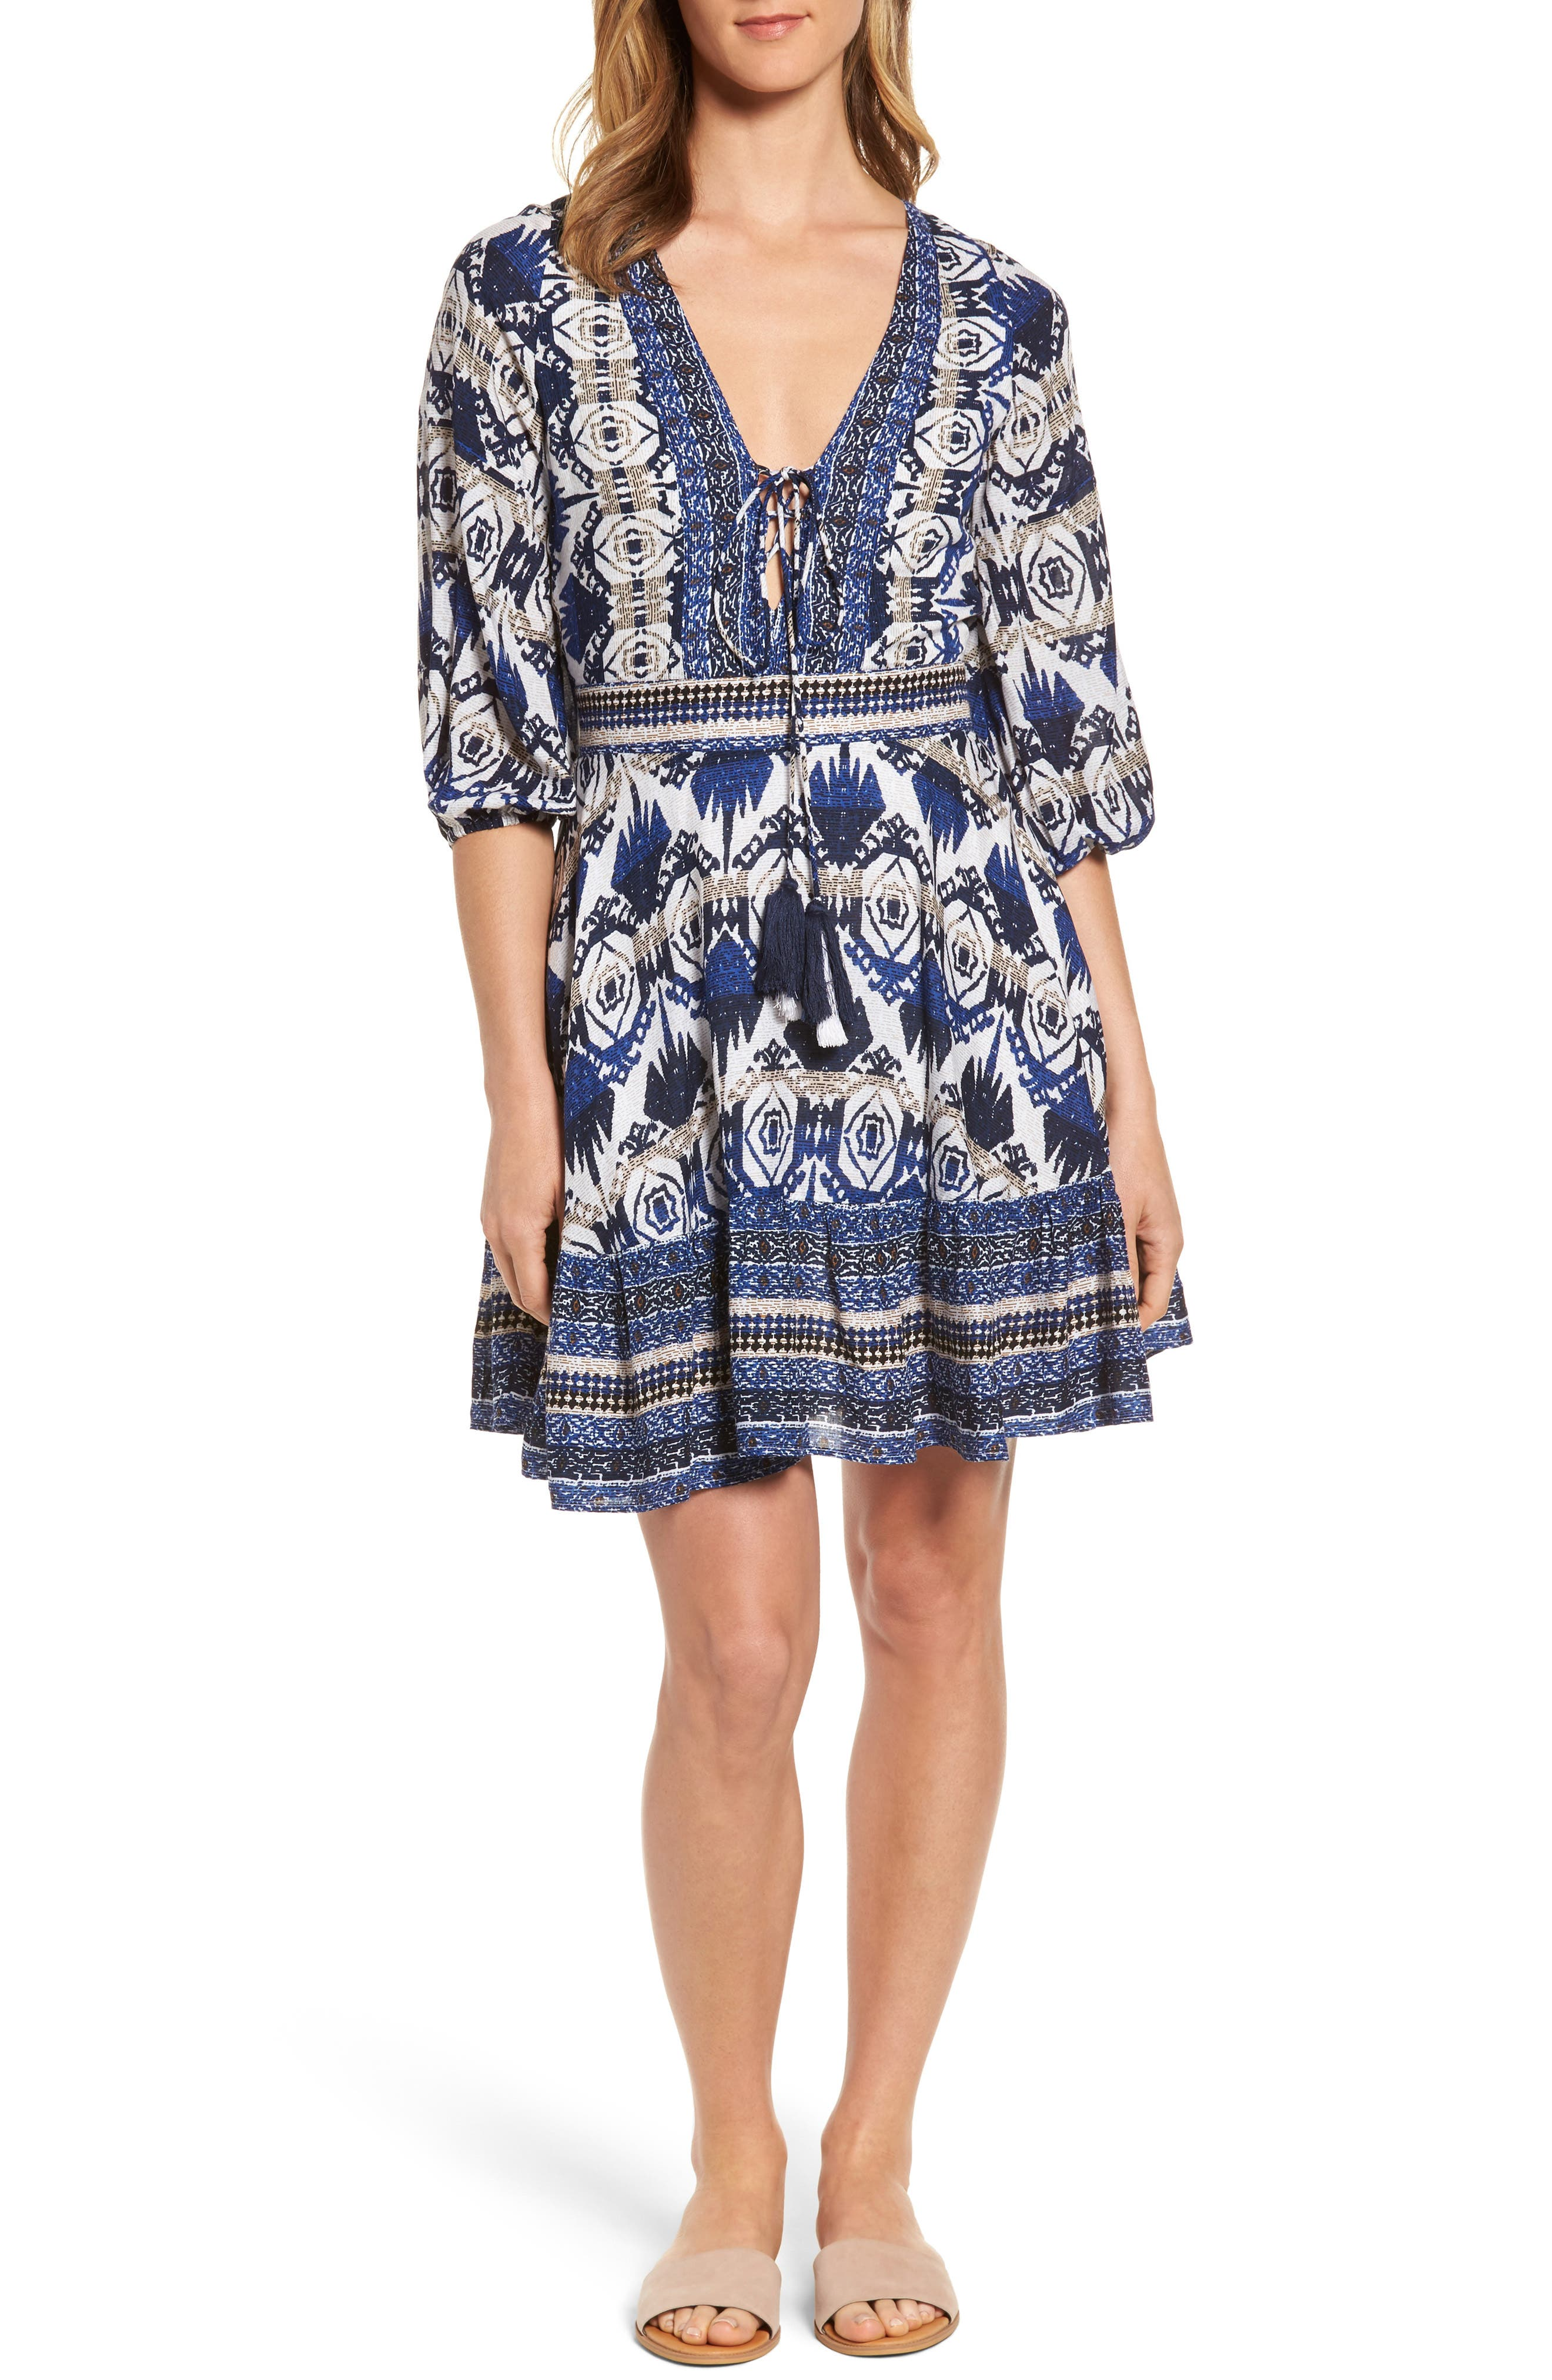 Main Image - KAS NEW YORK Camille Mixed Print Fit & Flare Dress